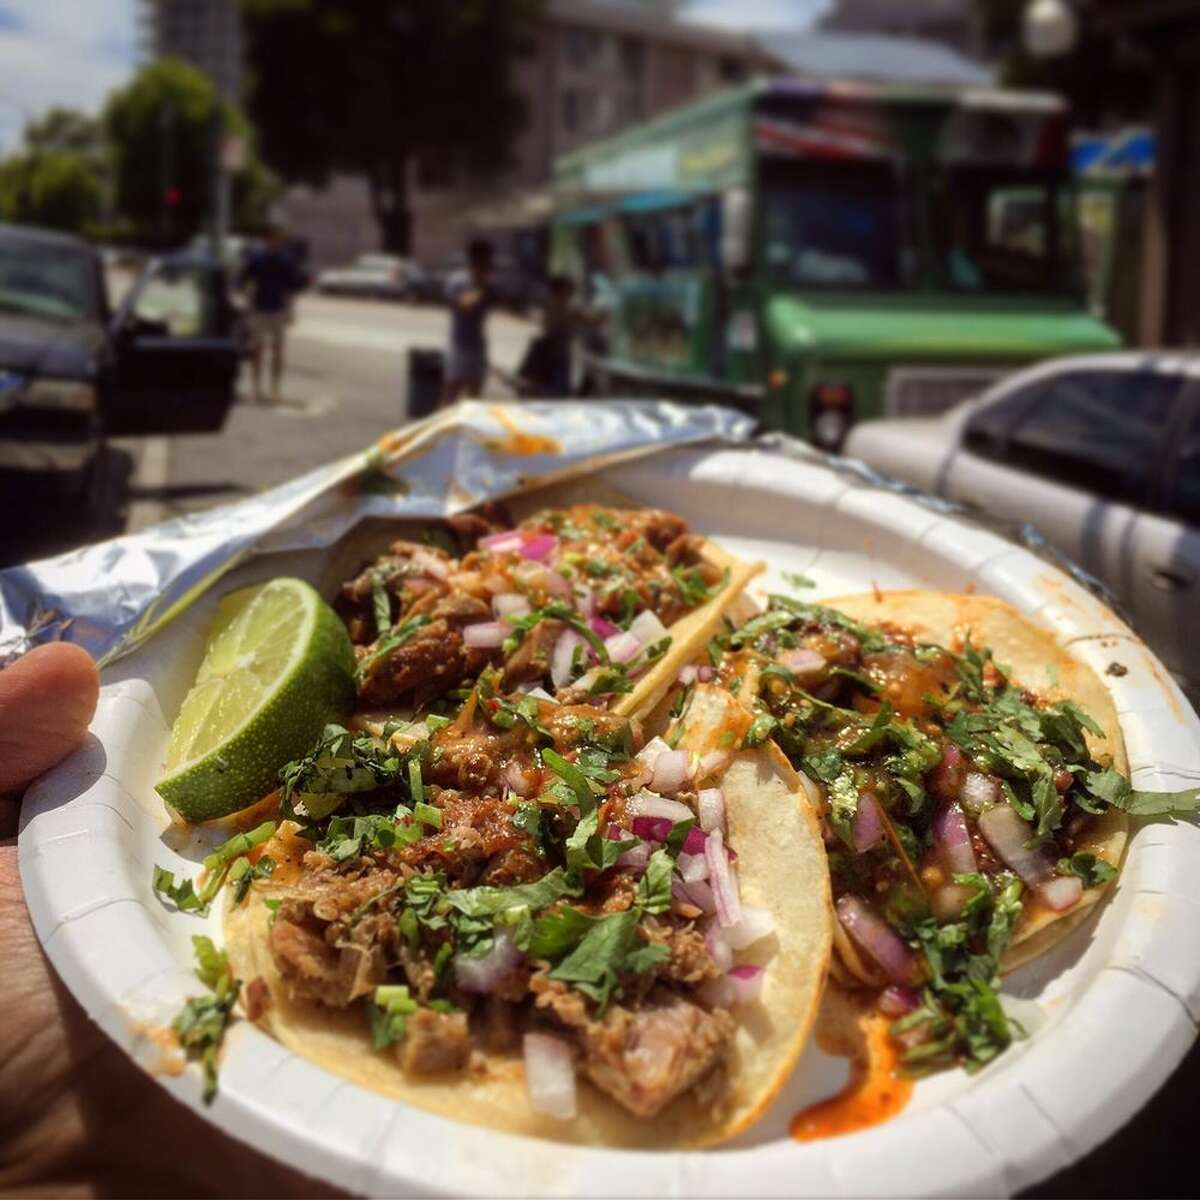 A selection of tacos from Tacos Mi Rancho in Oakland.